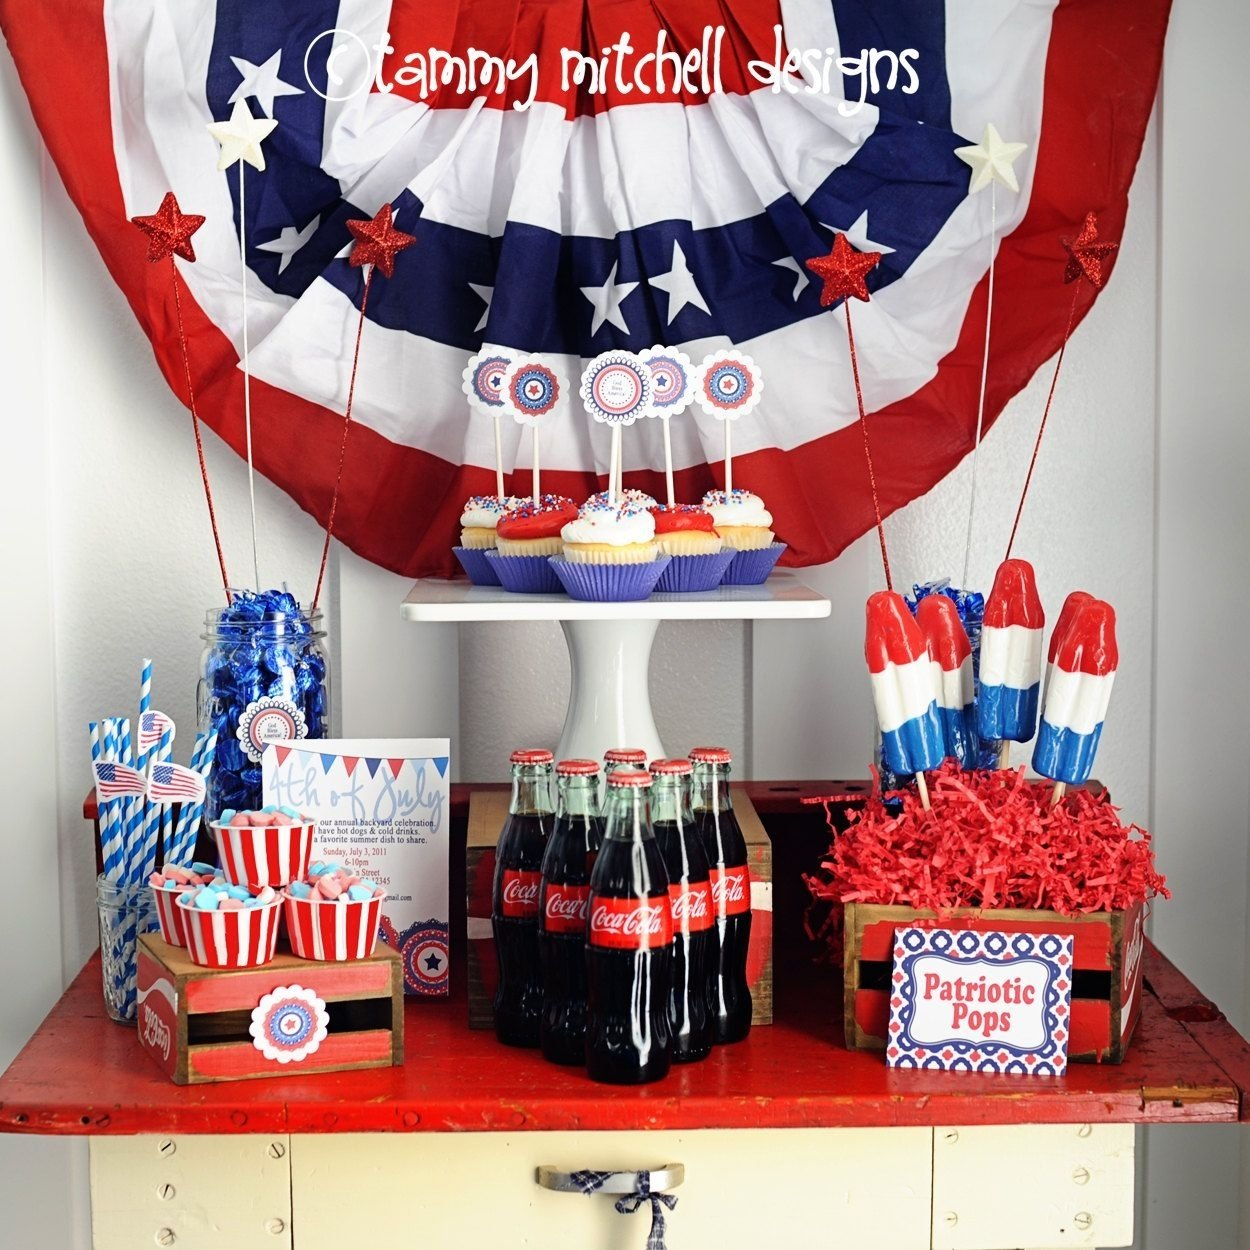 10 Beautiful Red White And Blue Party Ideas the 4th of july election night party patriotic red white and blue 2020